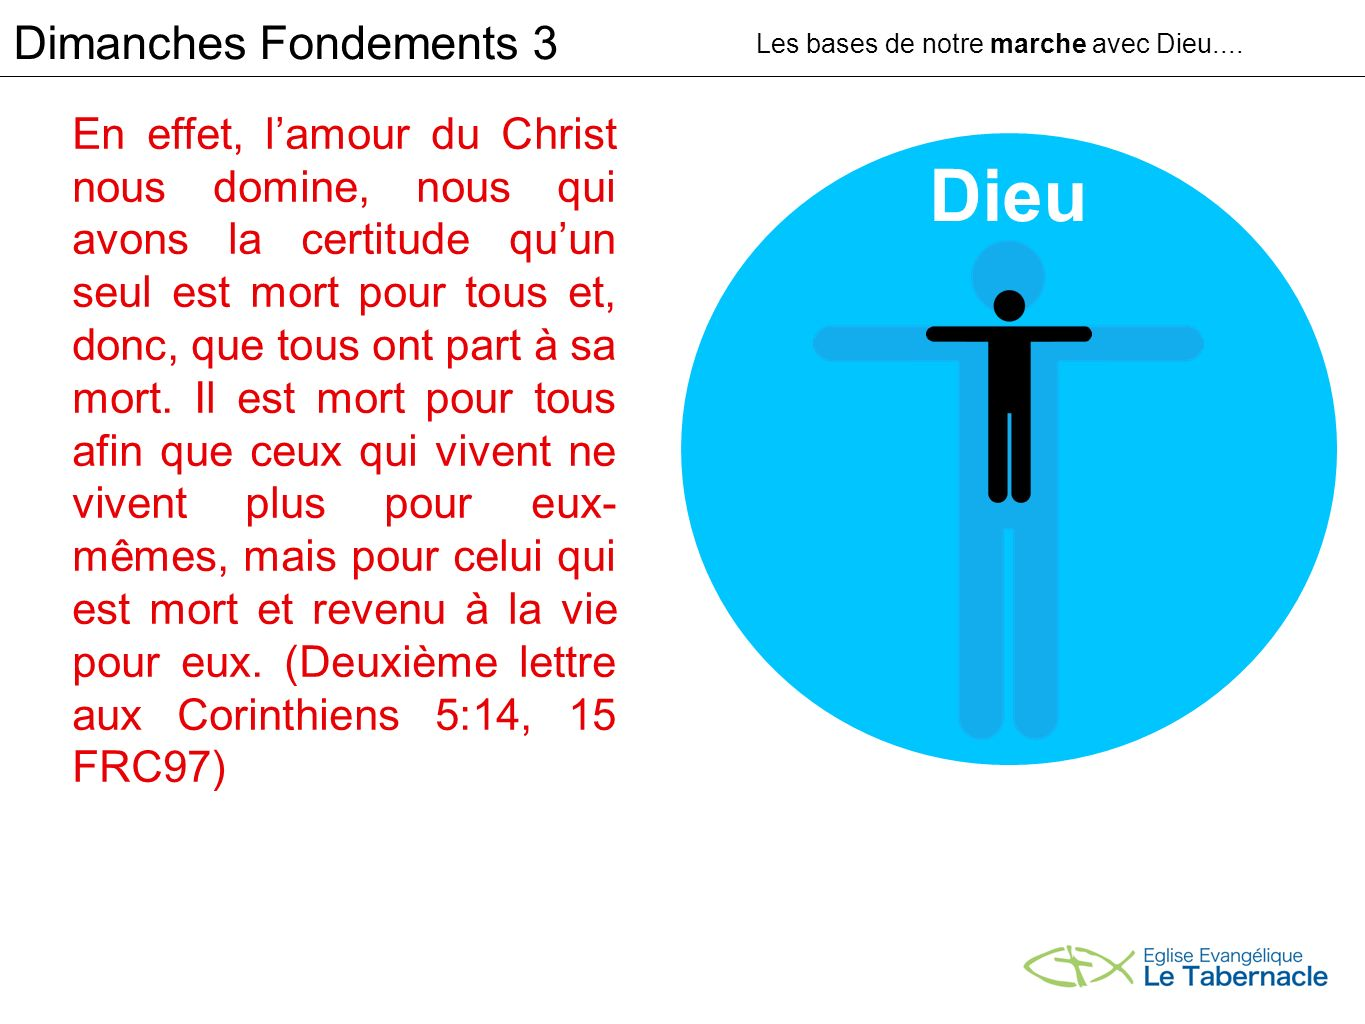 Dieu Dimanches Fondements 3